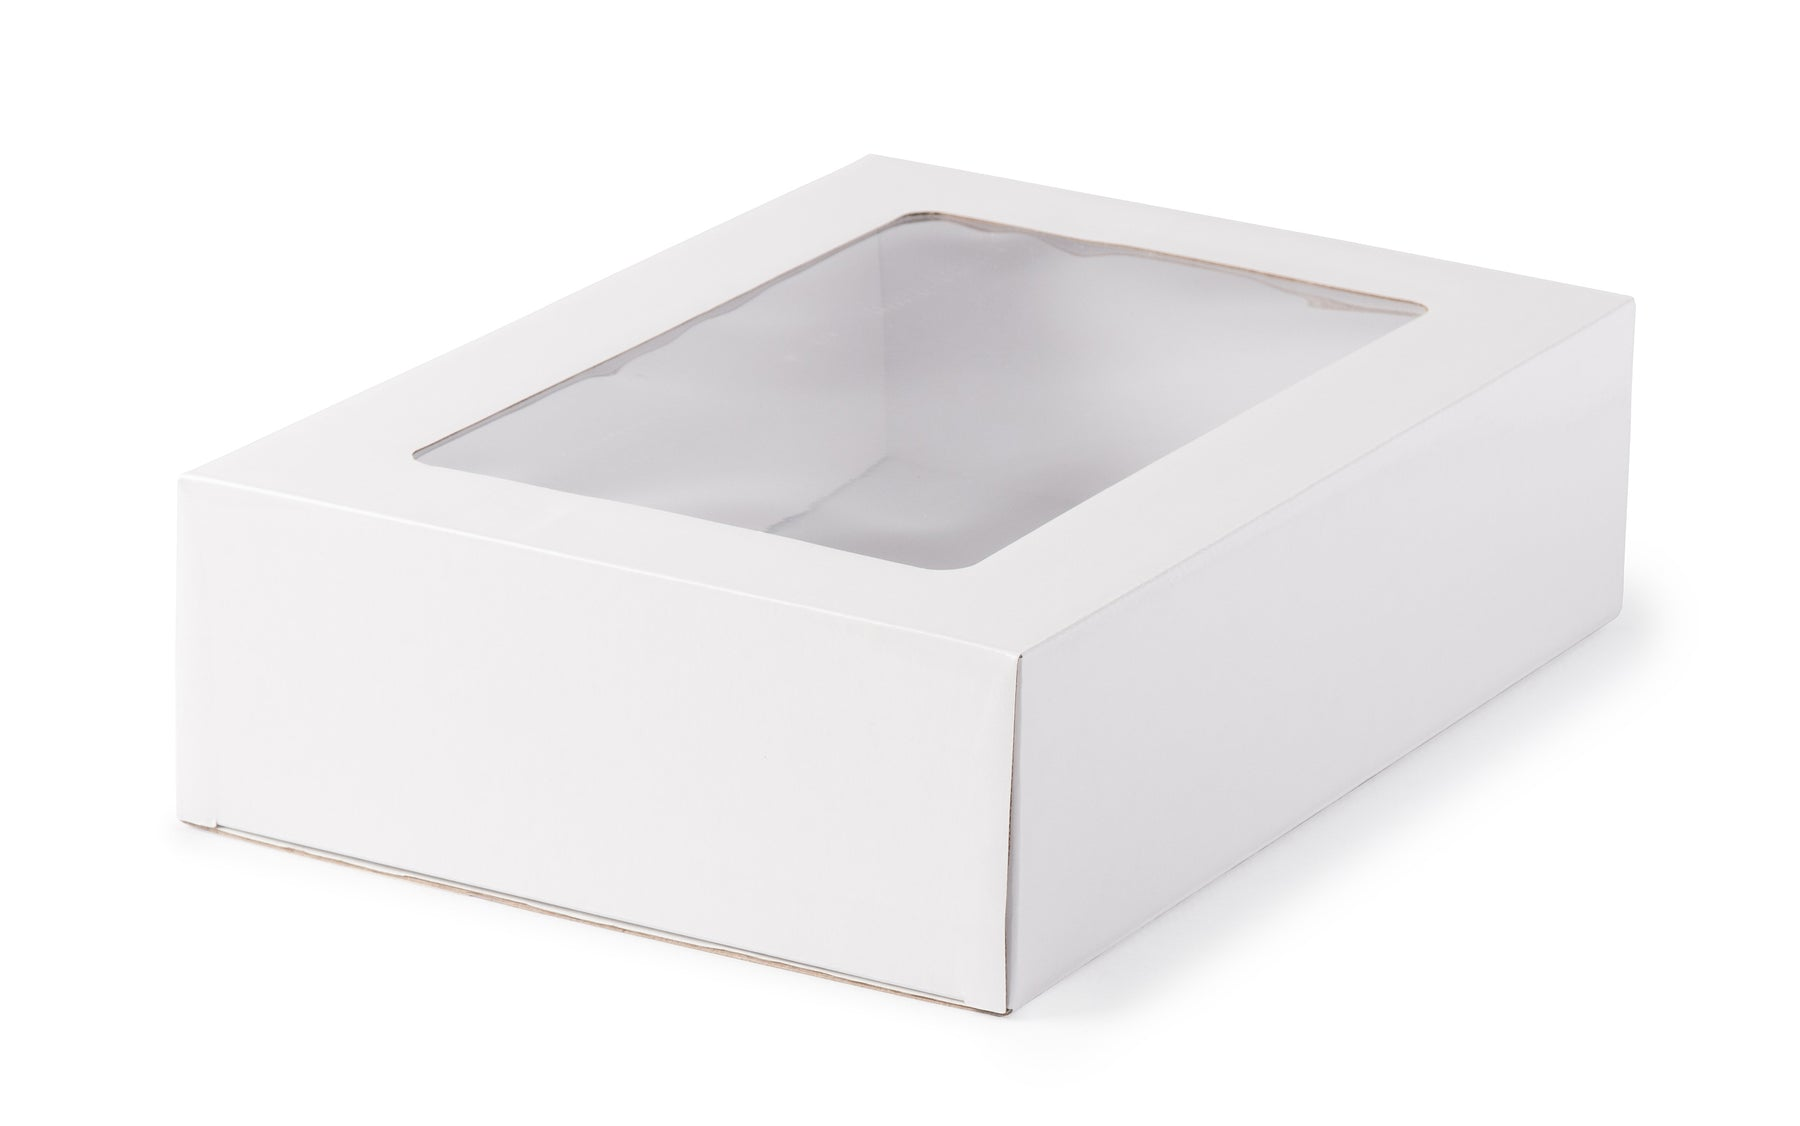 Small Gourmet Display Box - White - Sample